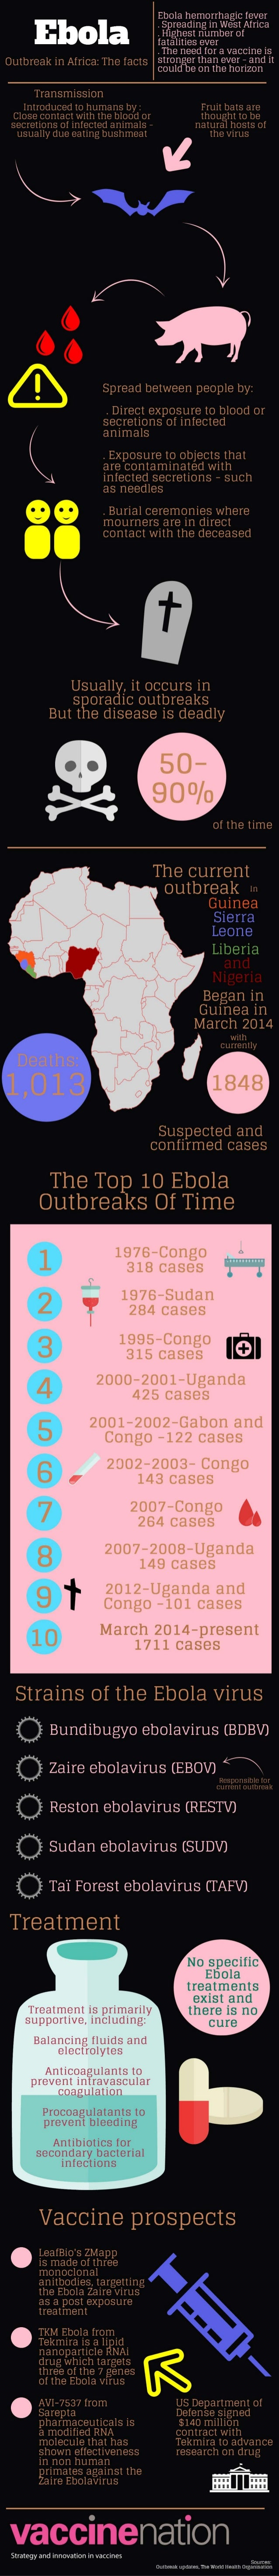 Ebola hemo_rrhagic fever . Spreading in West Africa .  Highest number of fatalities ever  . The need for a vaccine is  Out...